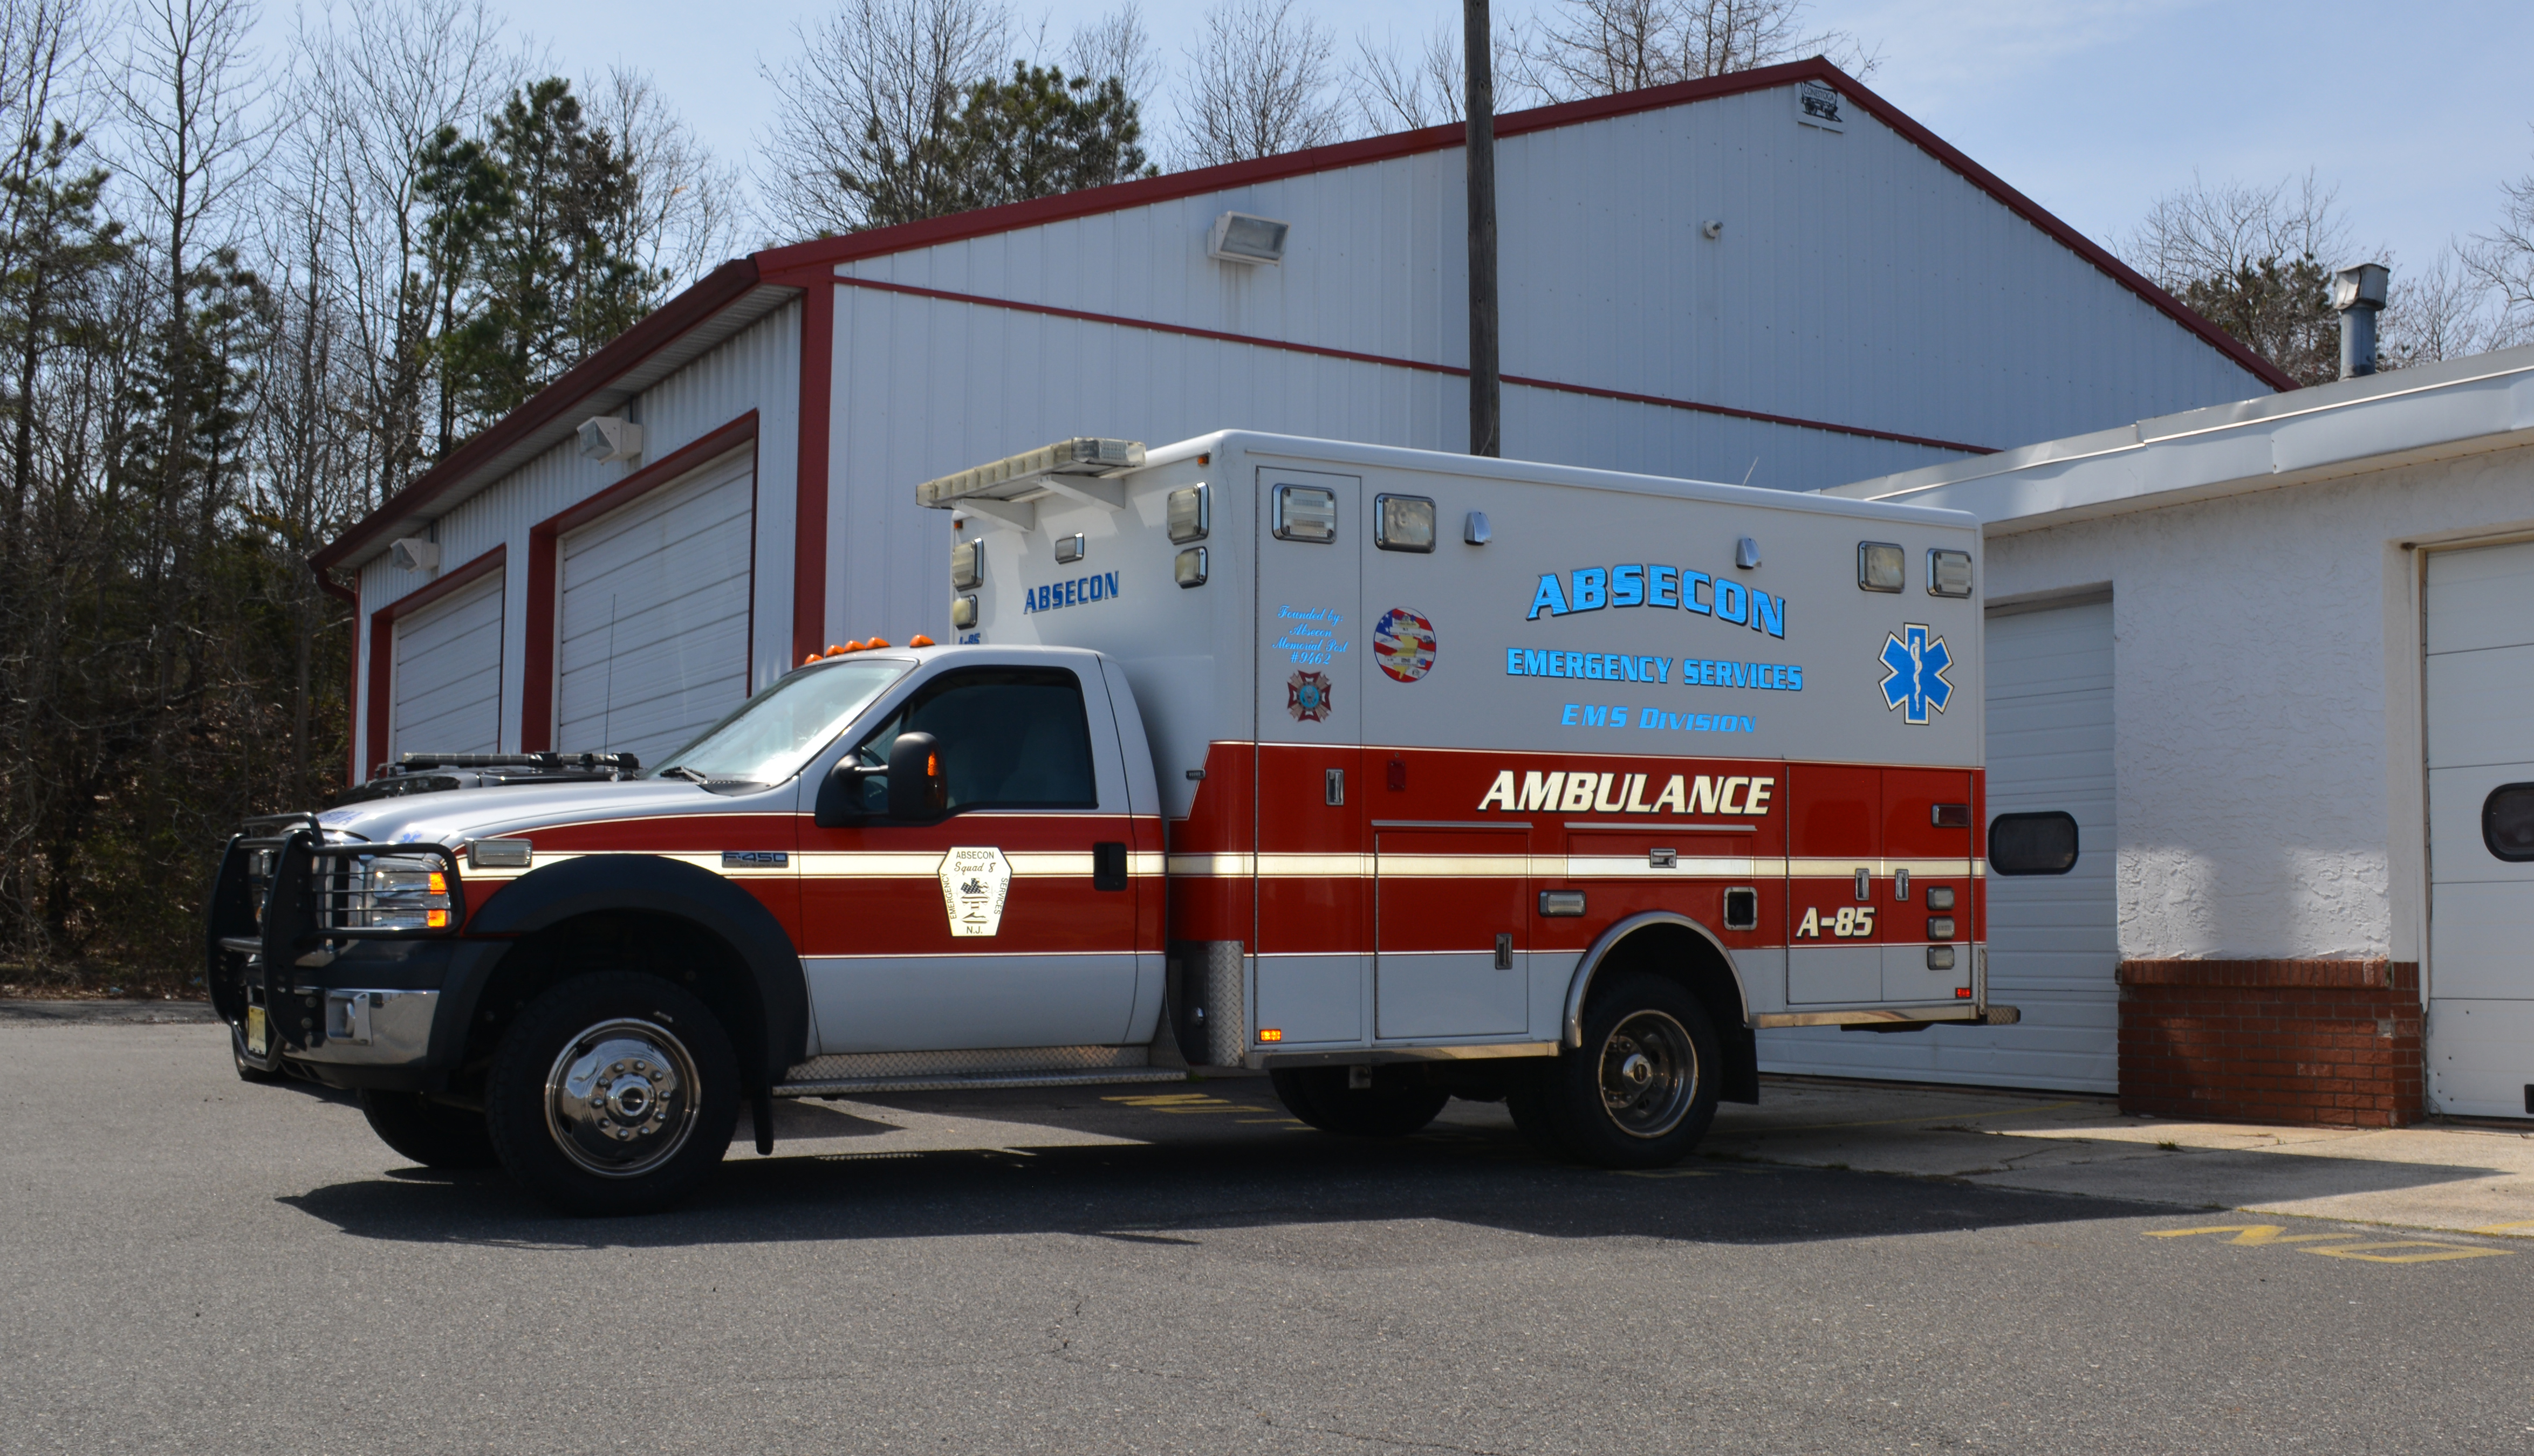 Absecon Emergency Services